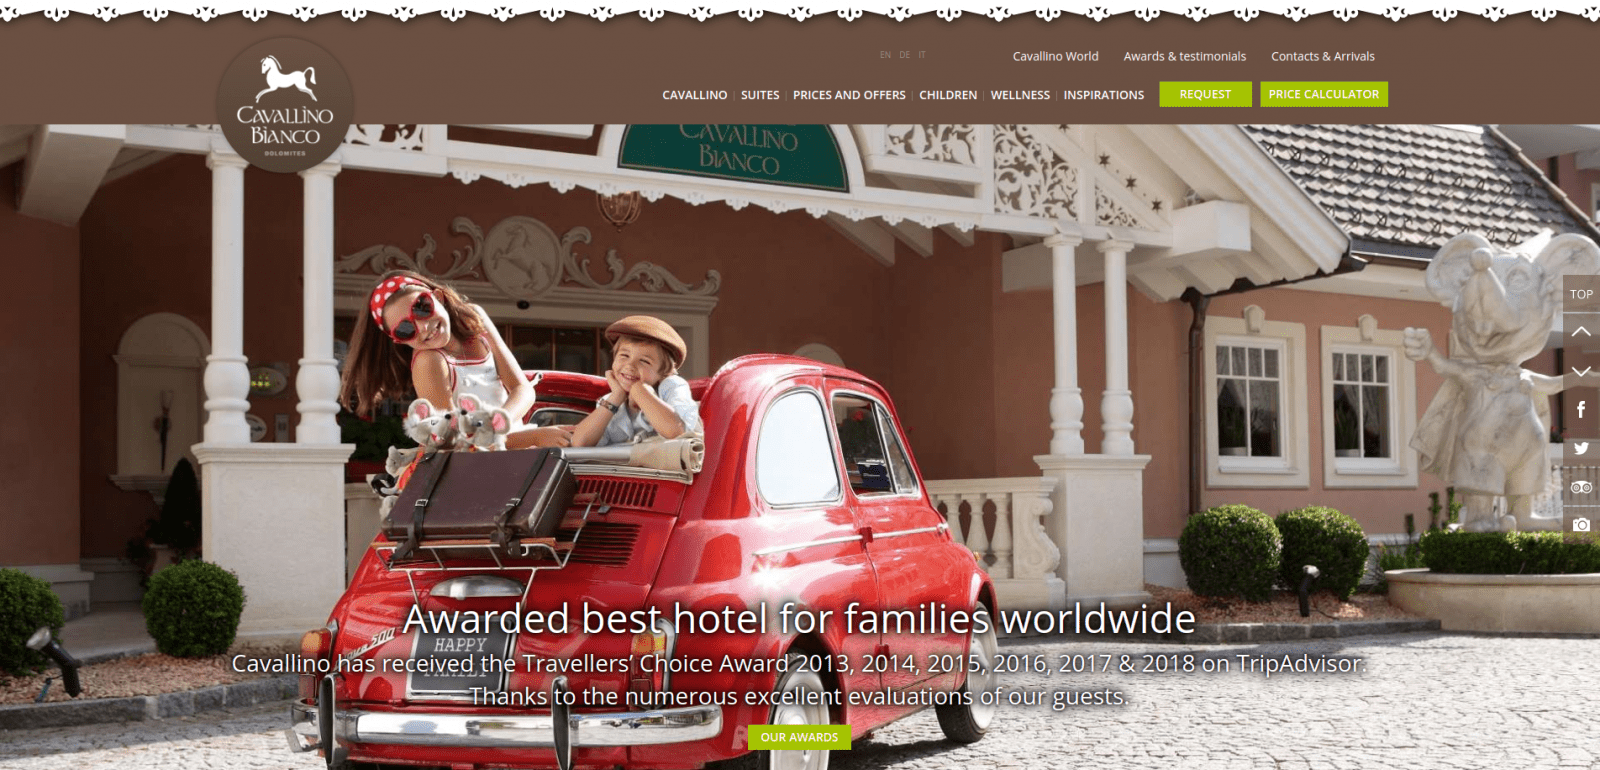 TOP 25 Hotels Websites for Families in the World